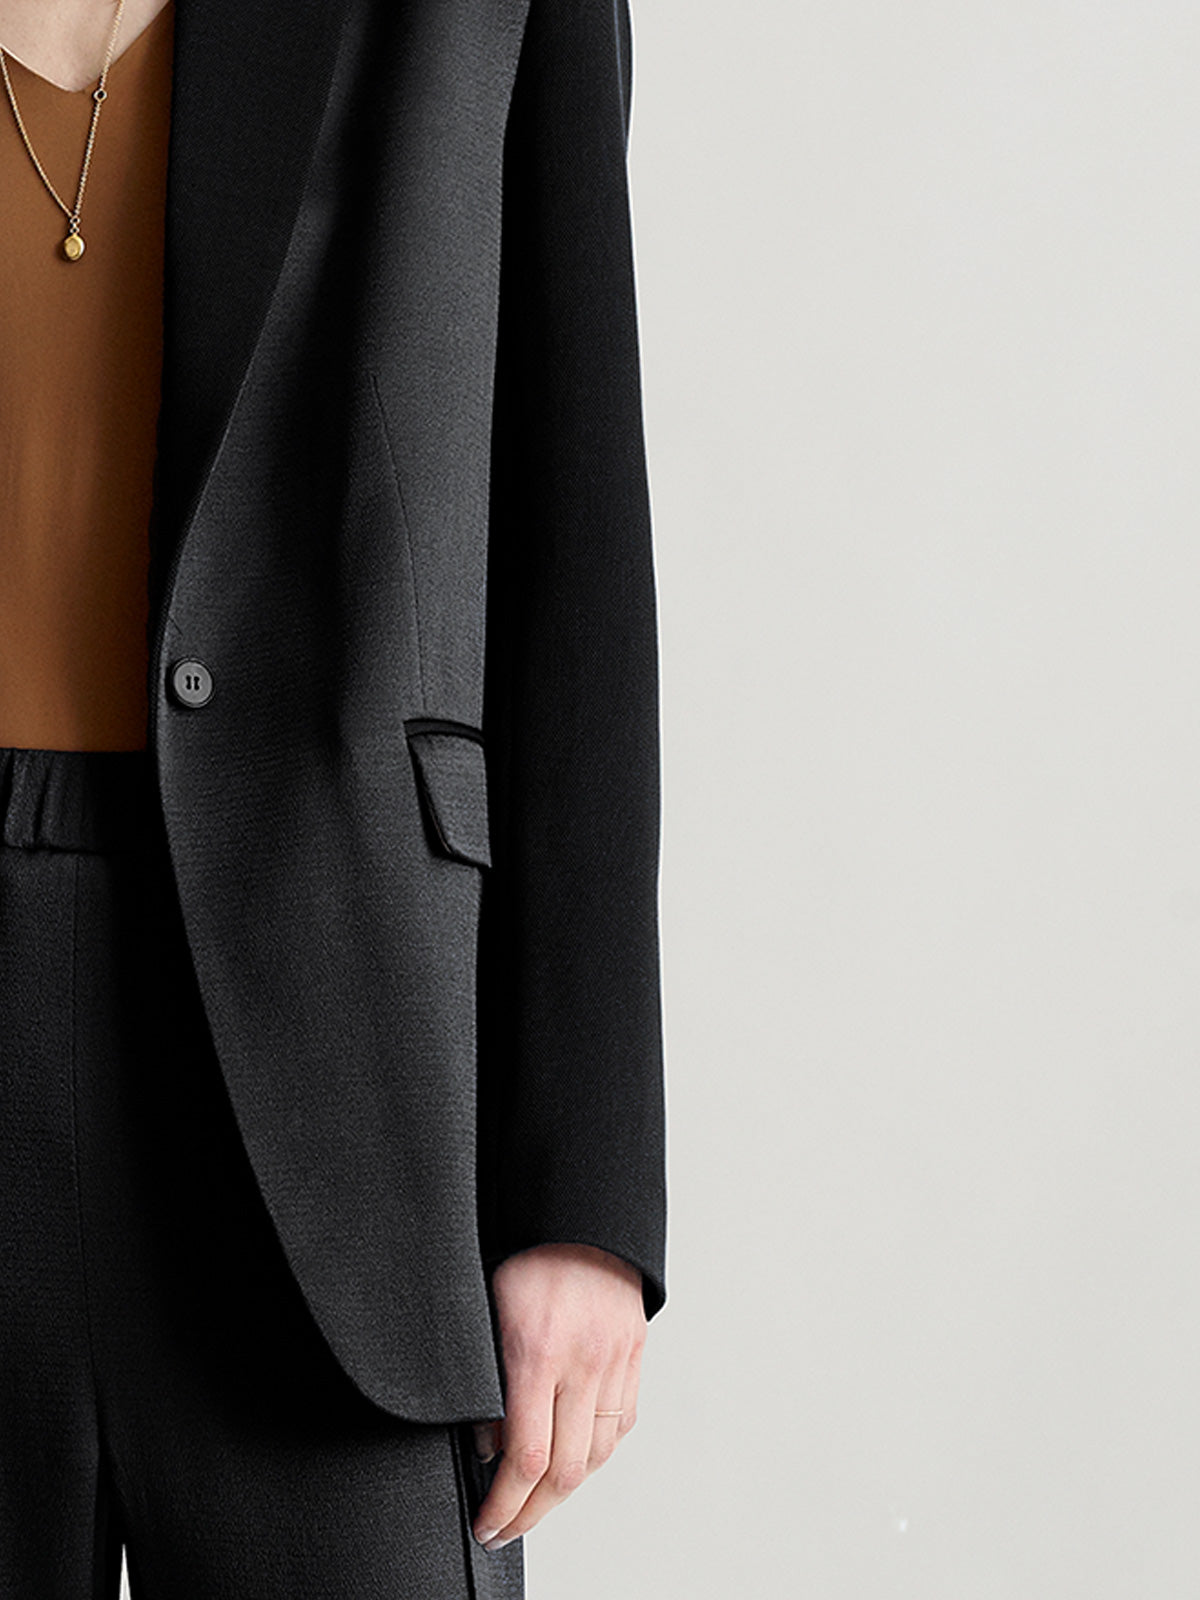 dac6bf900b90 Sykes London | Shop Jackets, Coats & Outerwear from Sykes London